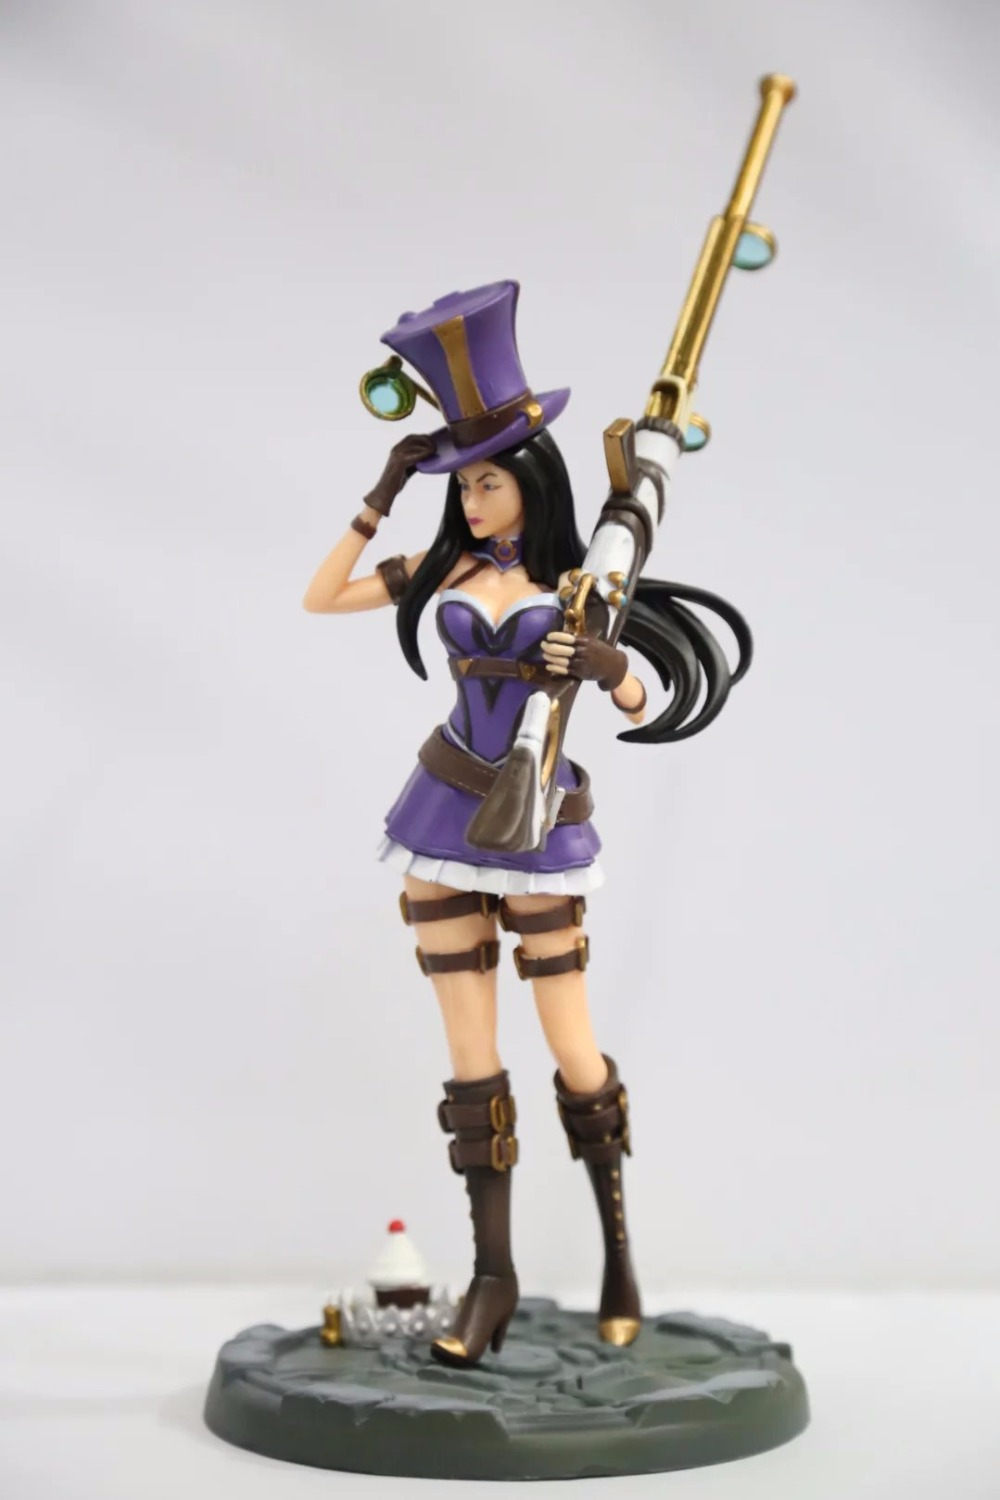 Free Shipping 14 Hot Game Hero Caitlyn - the Sheriff of Piltover Boxed 35cm PVC Action Figure Collection Model Doll Toy Gift free shipping 14 hot game hero caitlyn the sheriff of piltover boxed 35cm pvc action figure collection model doll toy gift